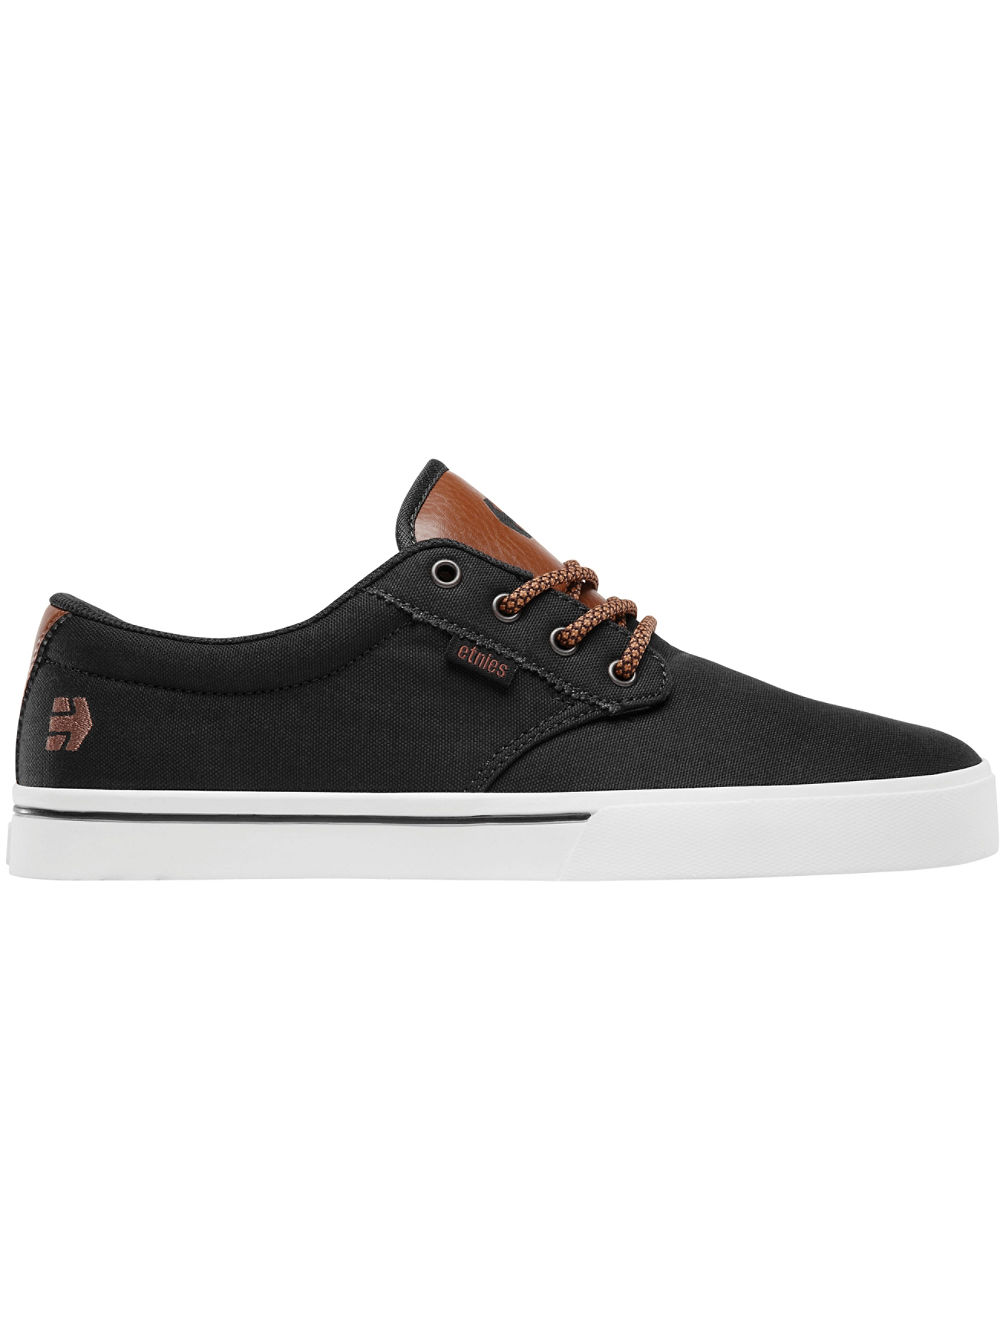 Jameson 2 Eco Skate Shoes